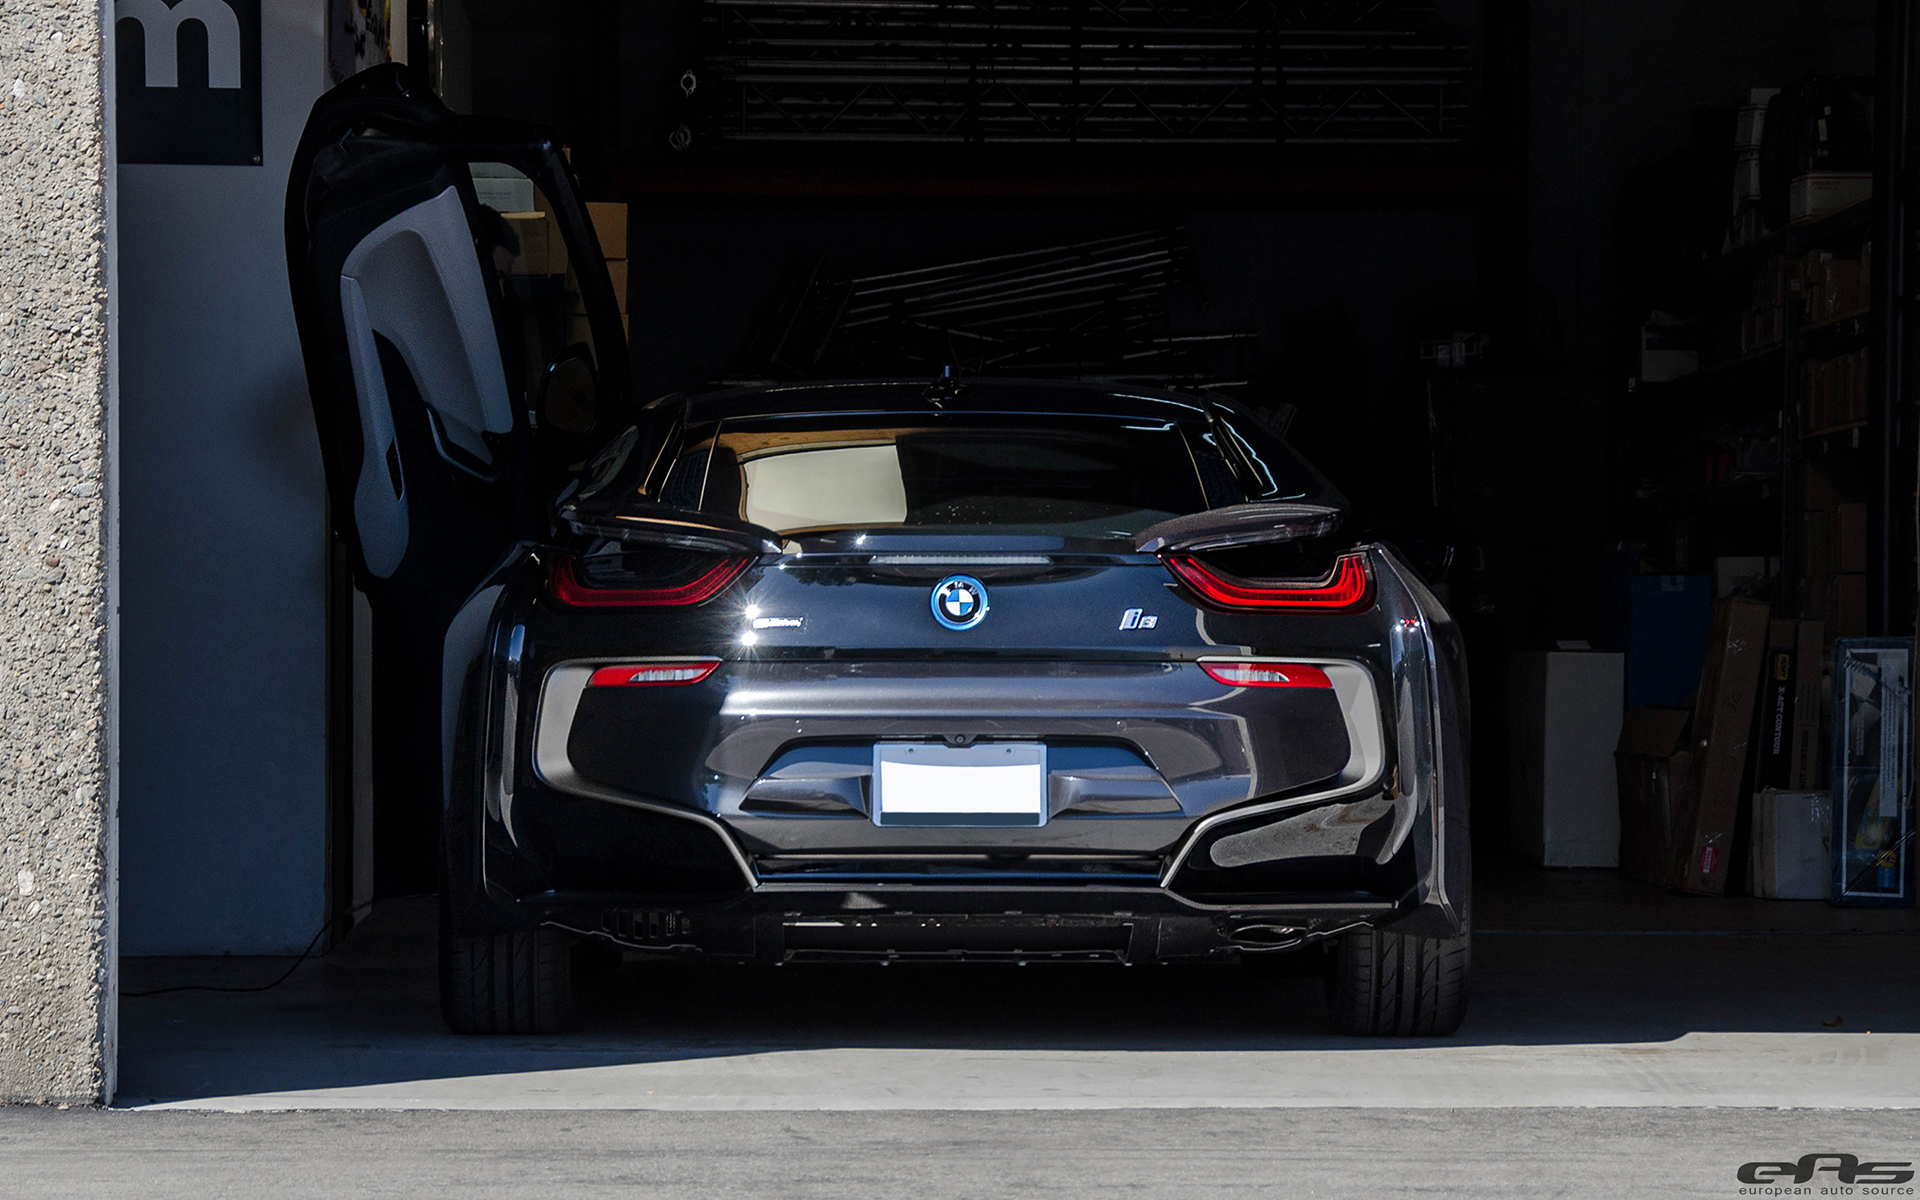 A Sophisto Gray Bmw I8 Just Visited Eas For Some Modding